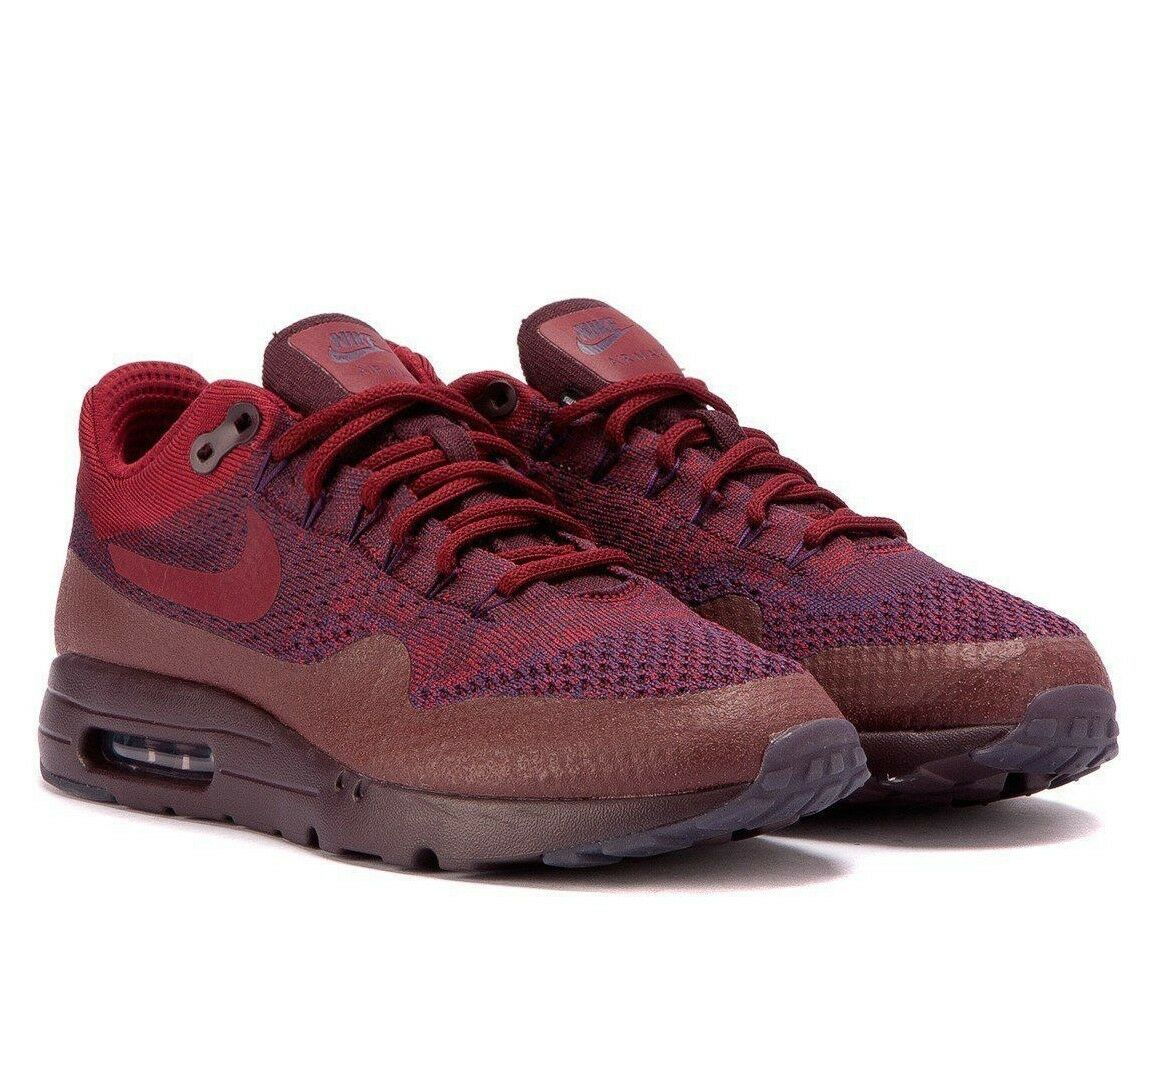 huge discount 412dd 98b63 Nike Air Max Max Max 1 Ultra Flyknit Grand Purple/Team Red (856958 566